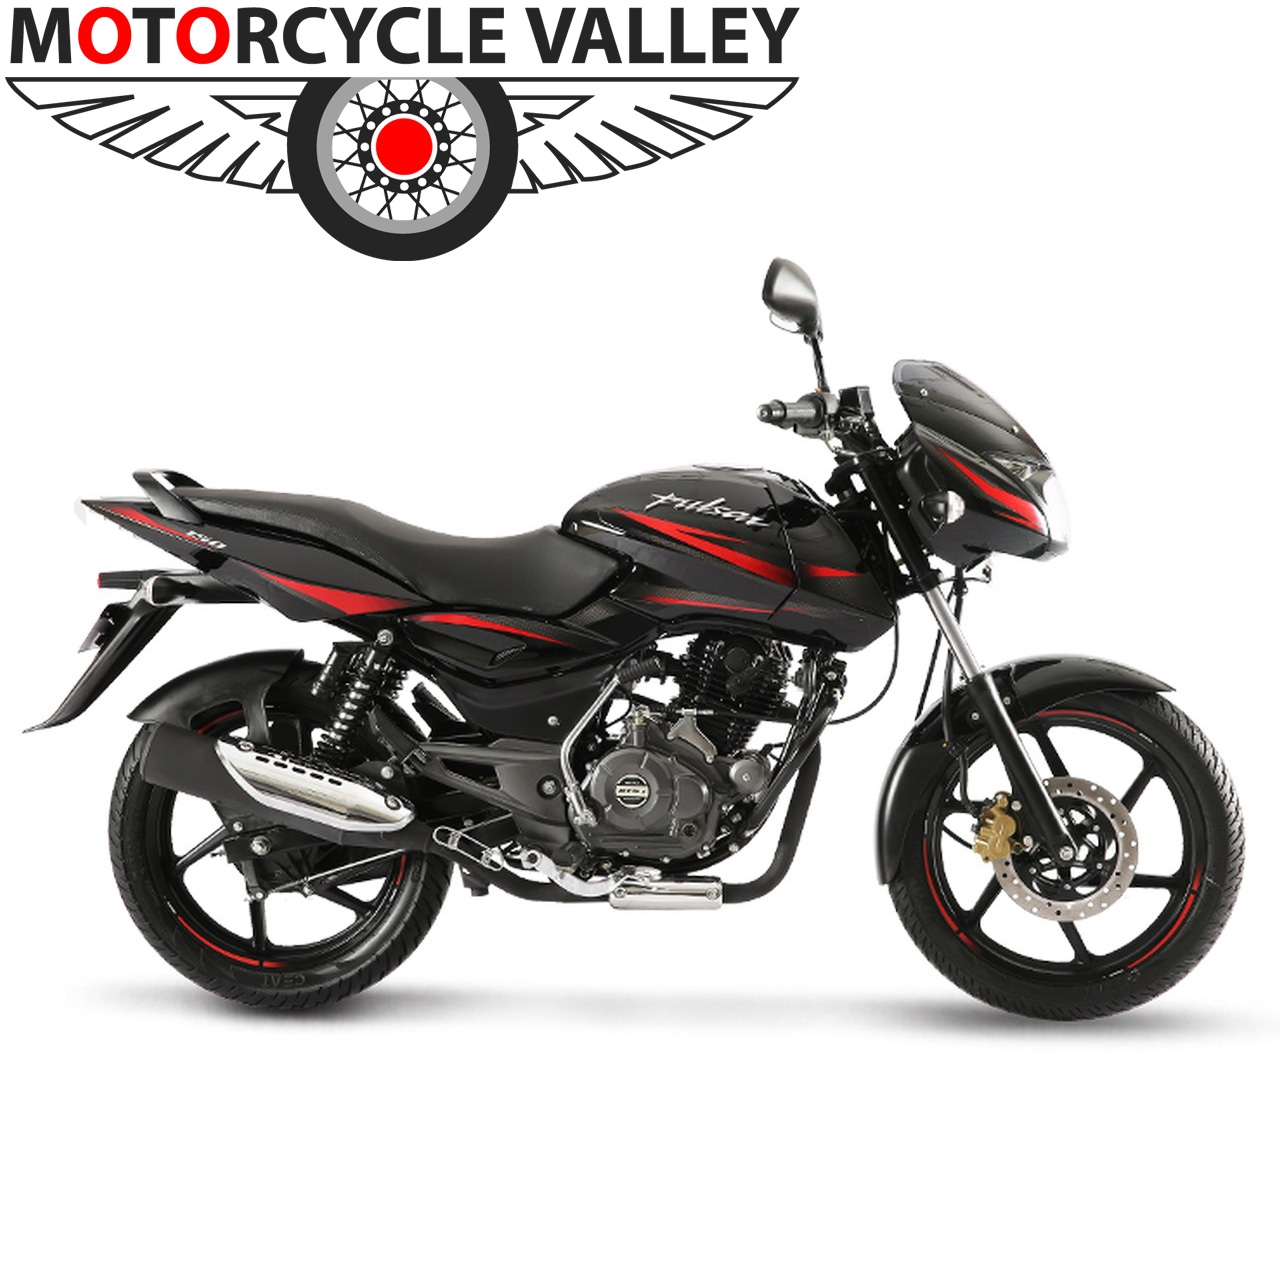 bangladesh motorcycle pic  Bajaj Pulsar 150 price in Bangladesh September 2018. Pros